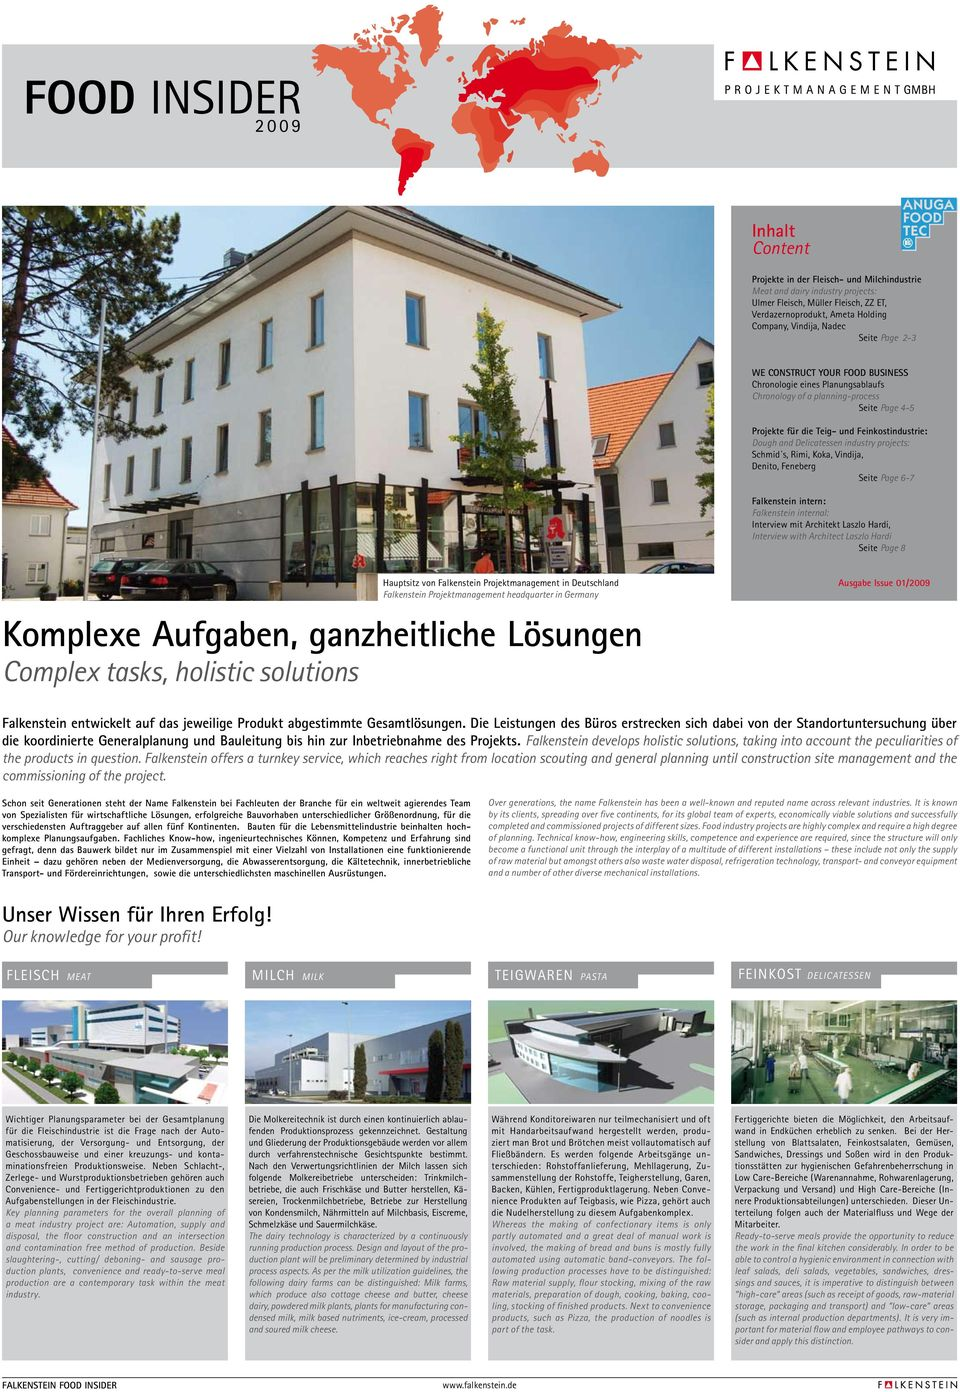 projects: Schmid s, Rimi, Koka, Vindija, Denito, Feneberg Seite Page 6-7 Falkenstein intern: Falkenstein internal: Interview mit Architekt Laszlo Hardi, Interview with Architect Laszlo Hardi Seite